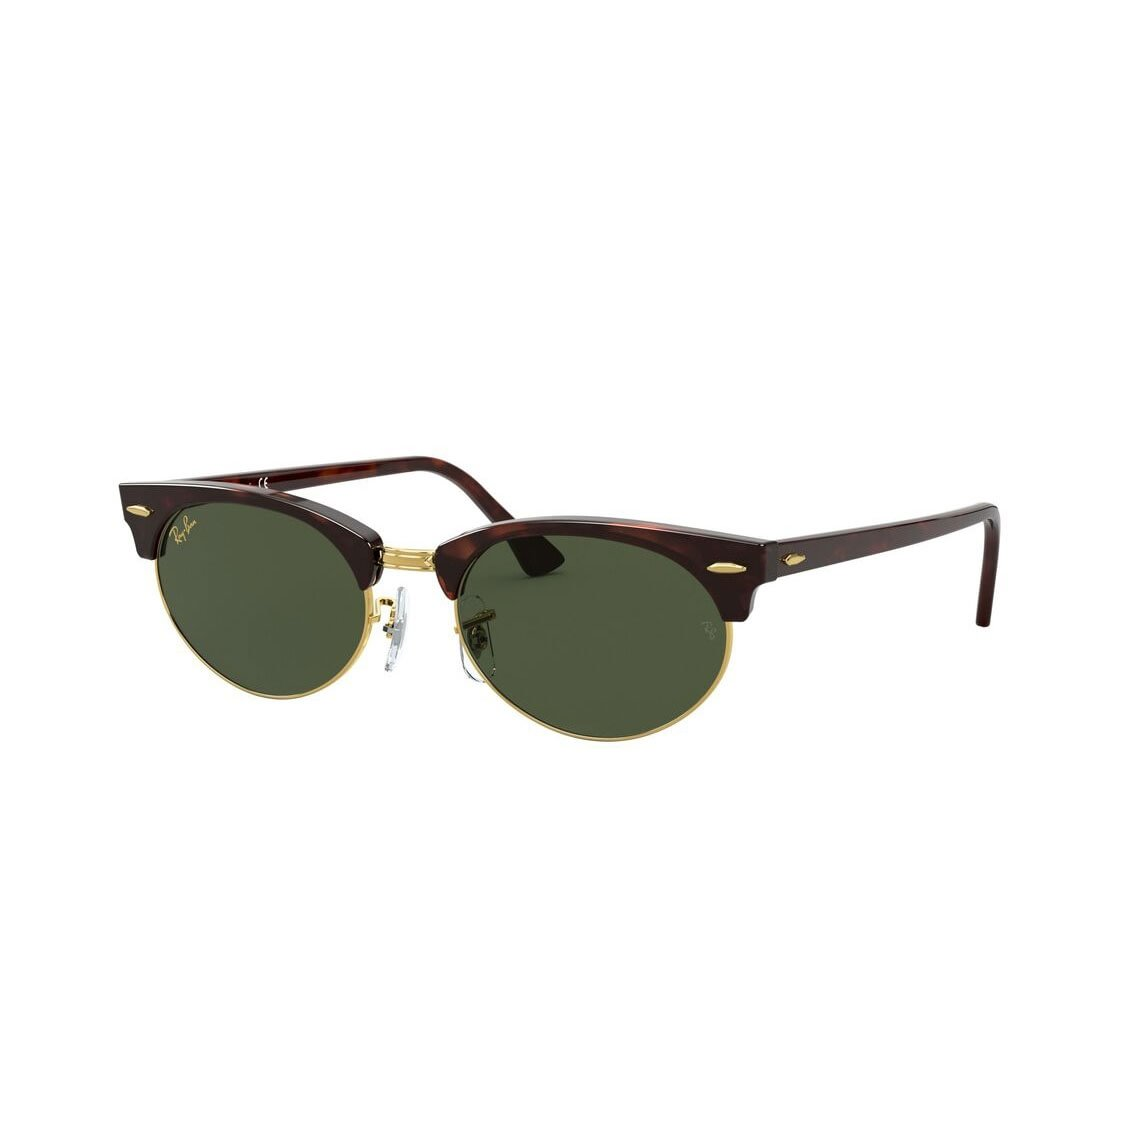 Ray-Ban Clubmaster Oval RB3946 130431 52